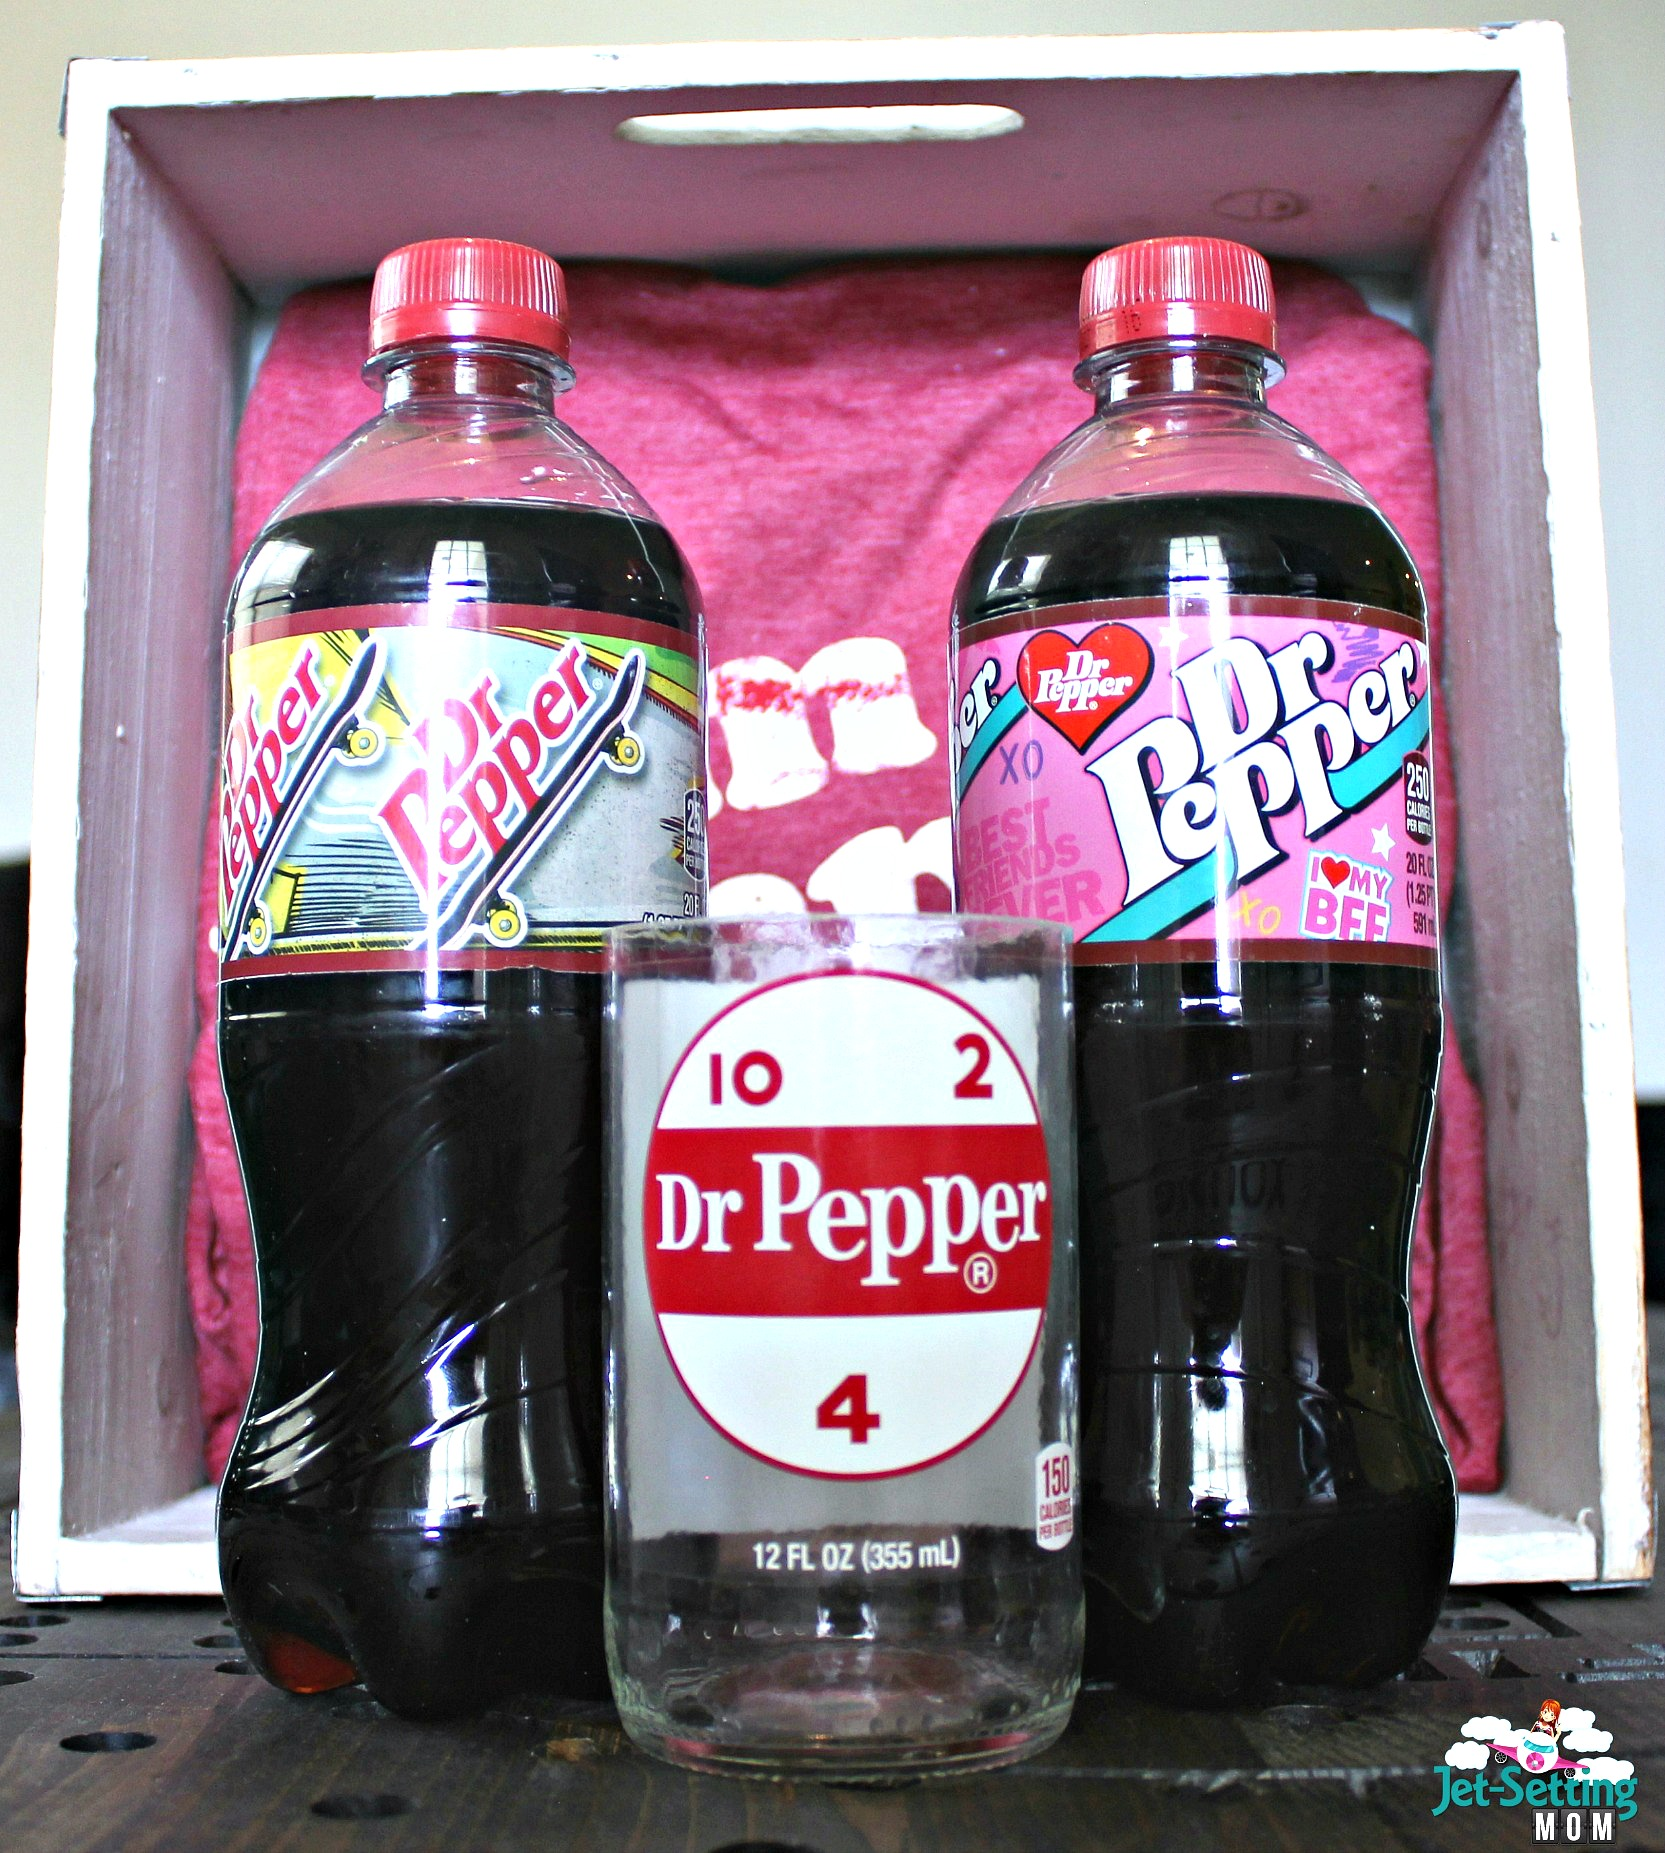 Dr Pepper Pick Your Pepper Labels let you express yourself! #DPSFlavorTour #ad